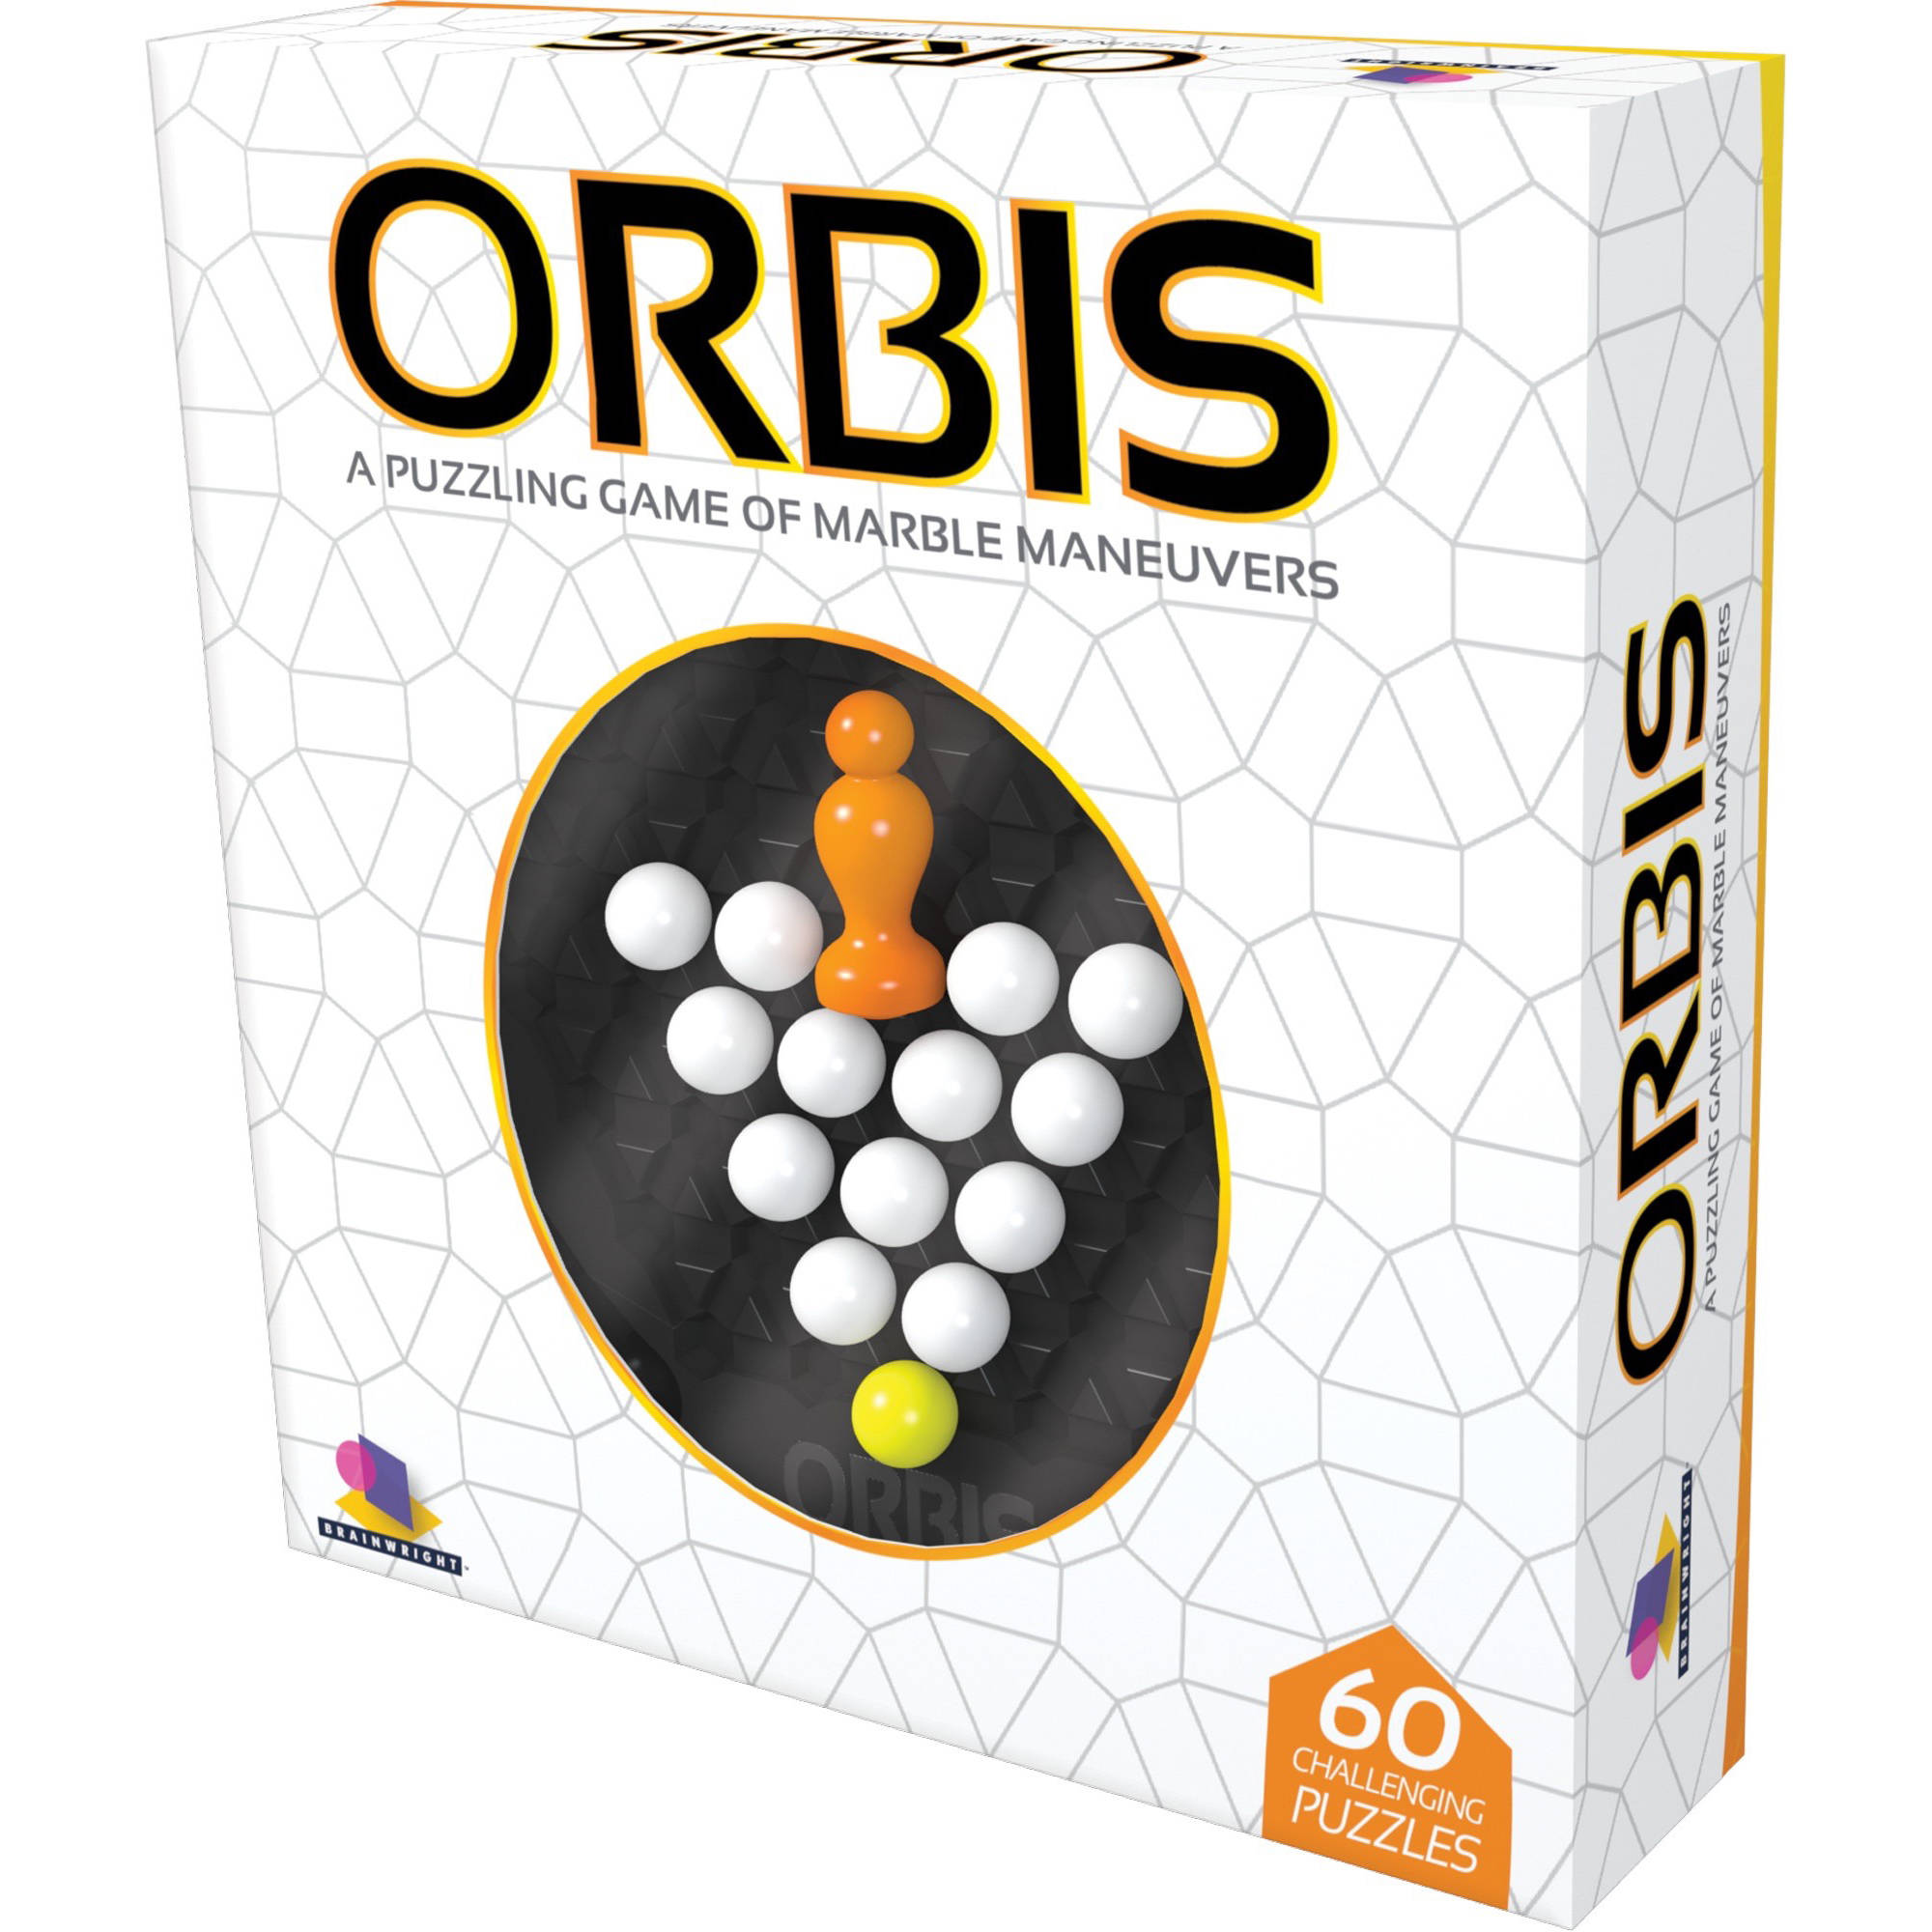 Orbis: A Puzzling Game of Marble Maneuvers